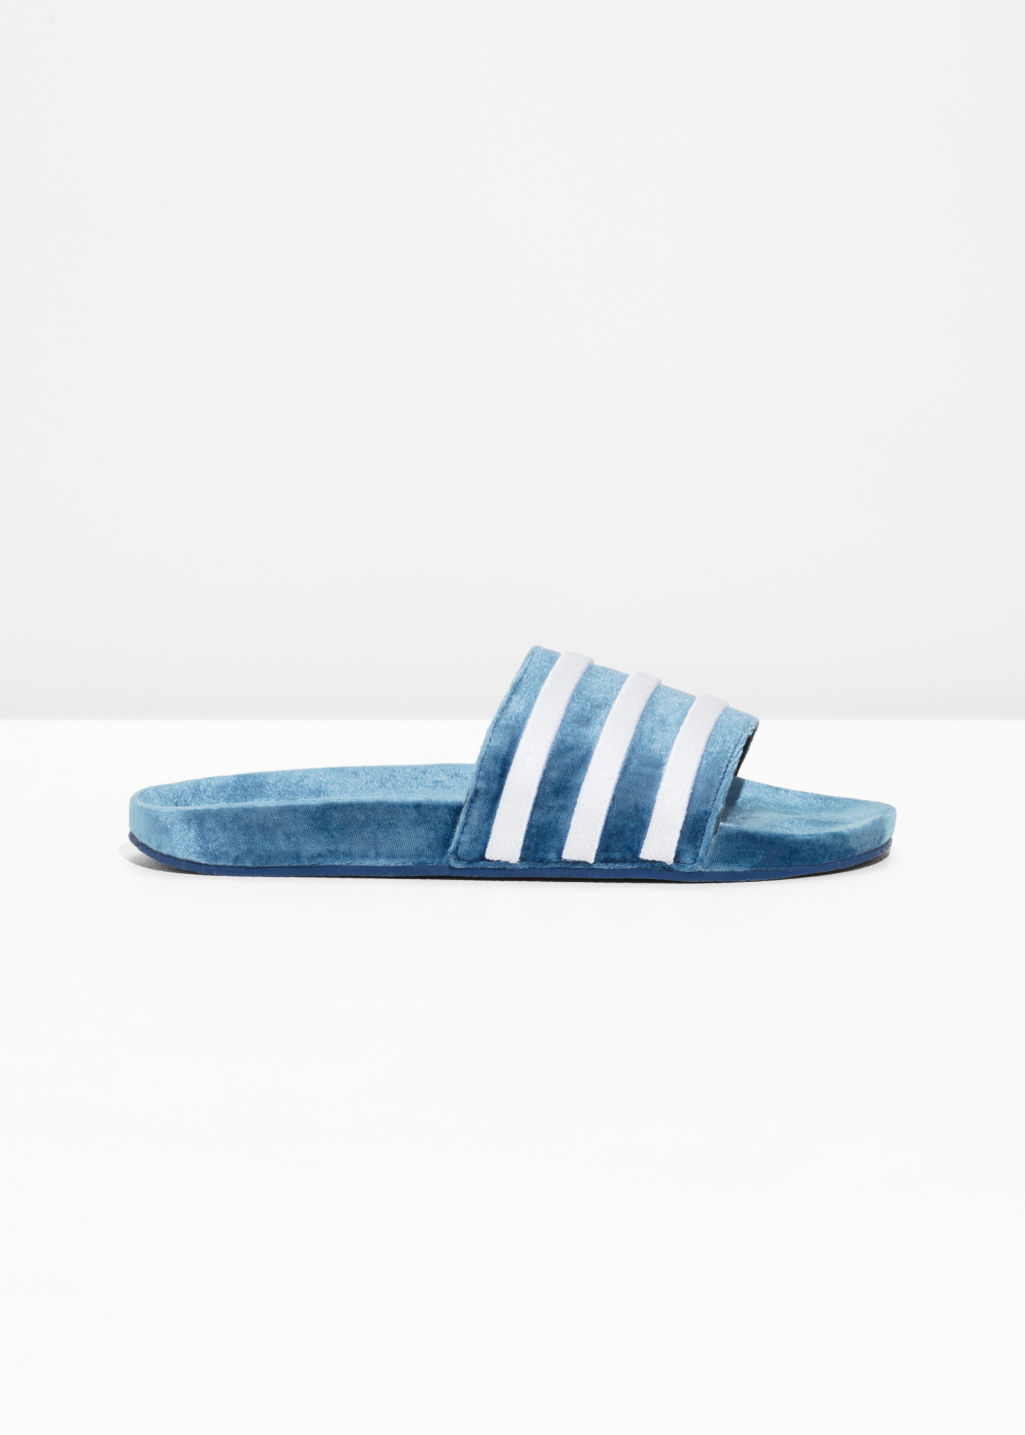 & OTHER STORIES Adidas Adilette Slides